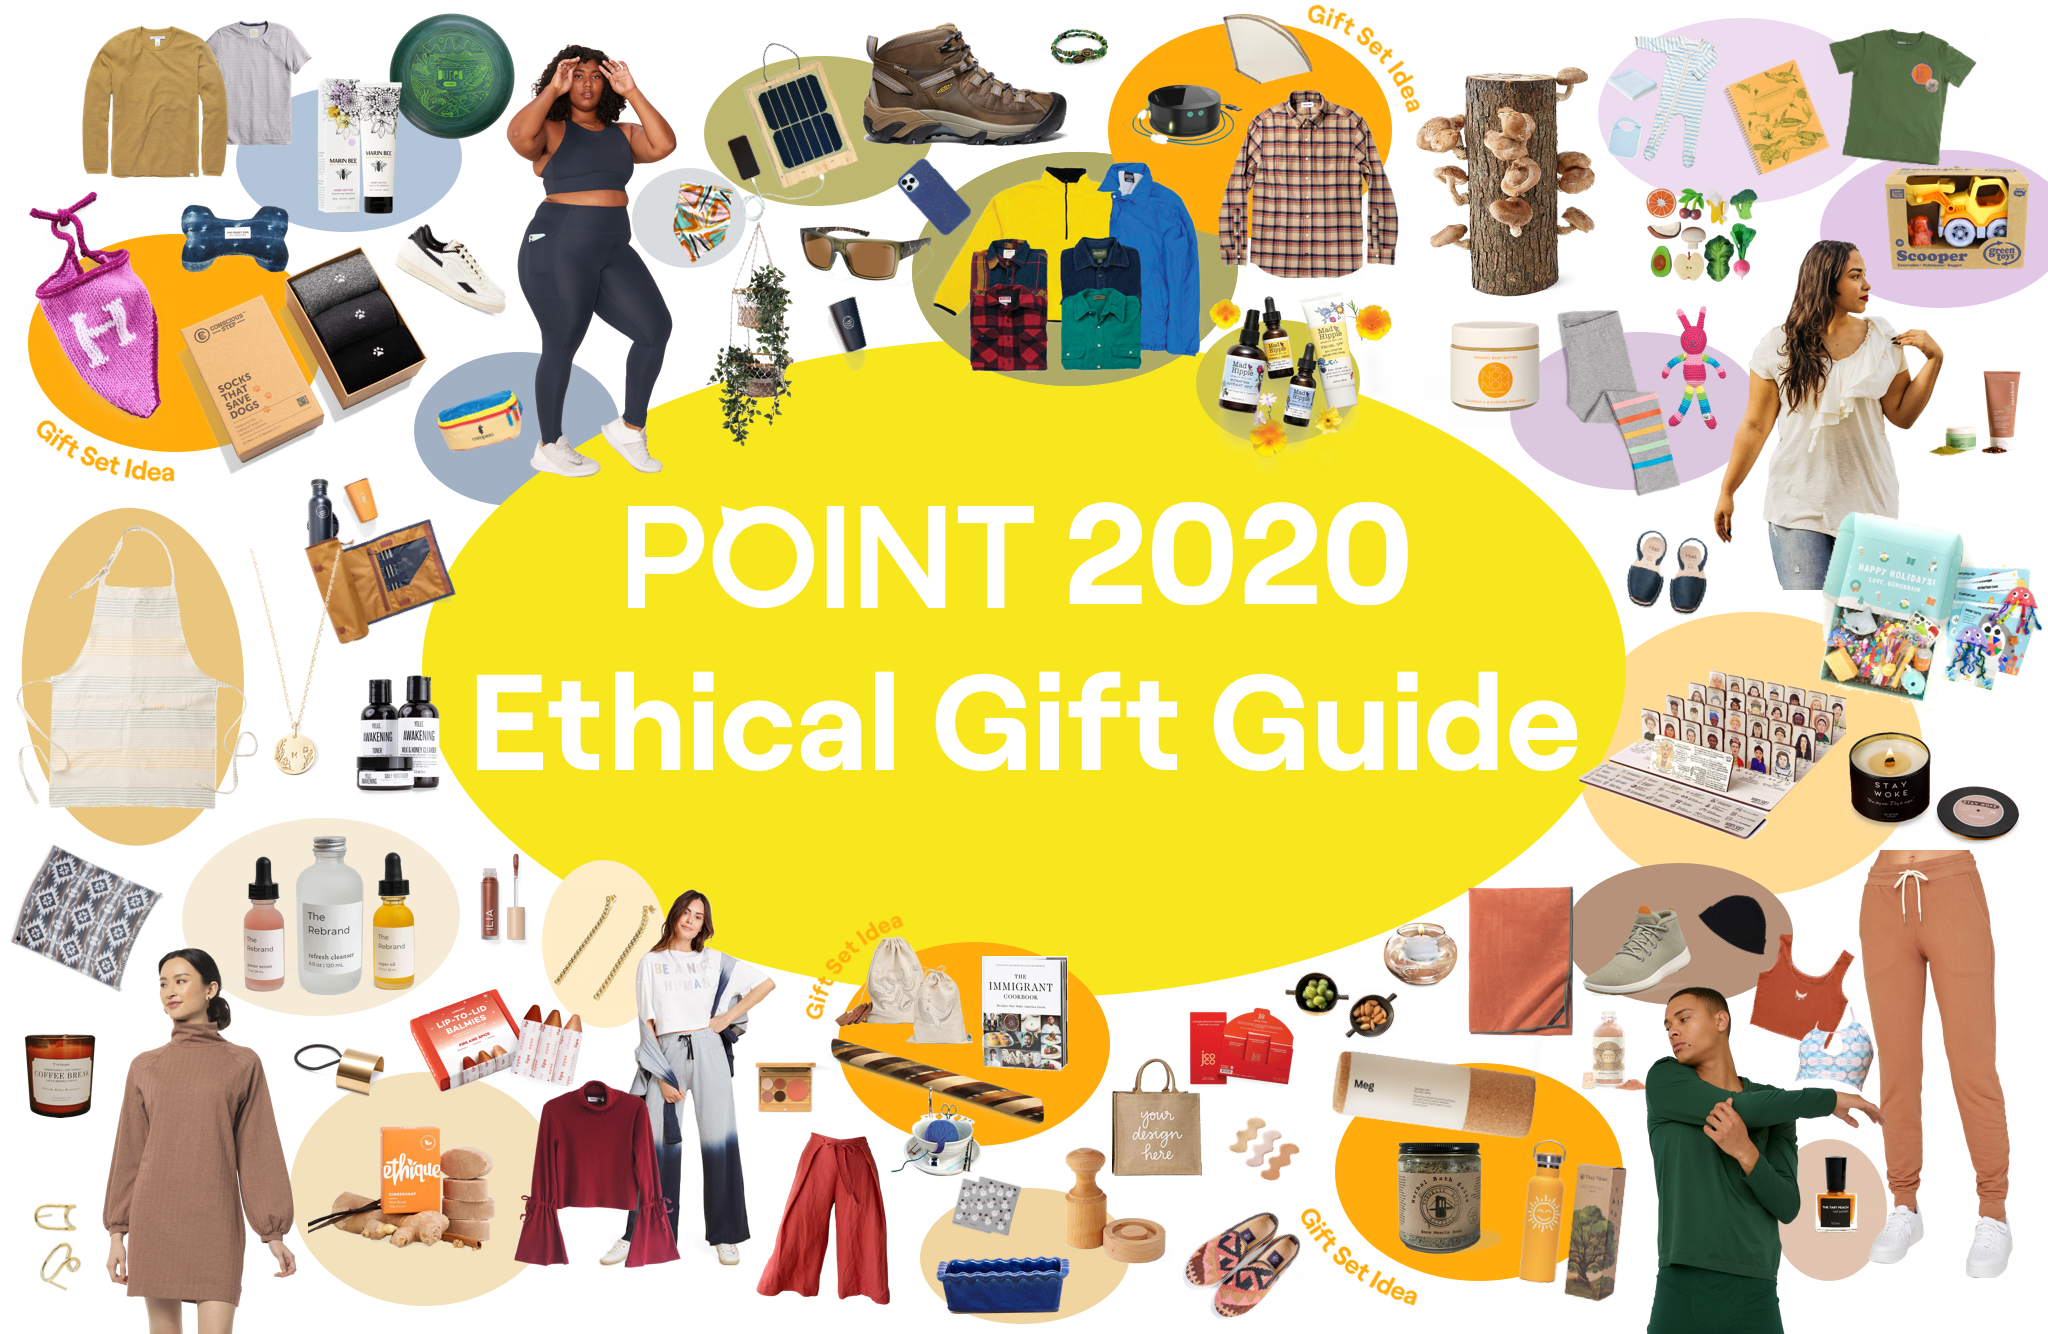 2020 Ethical and Sustainable Gift Guide by Quarantine Hobby